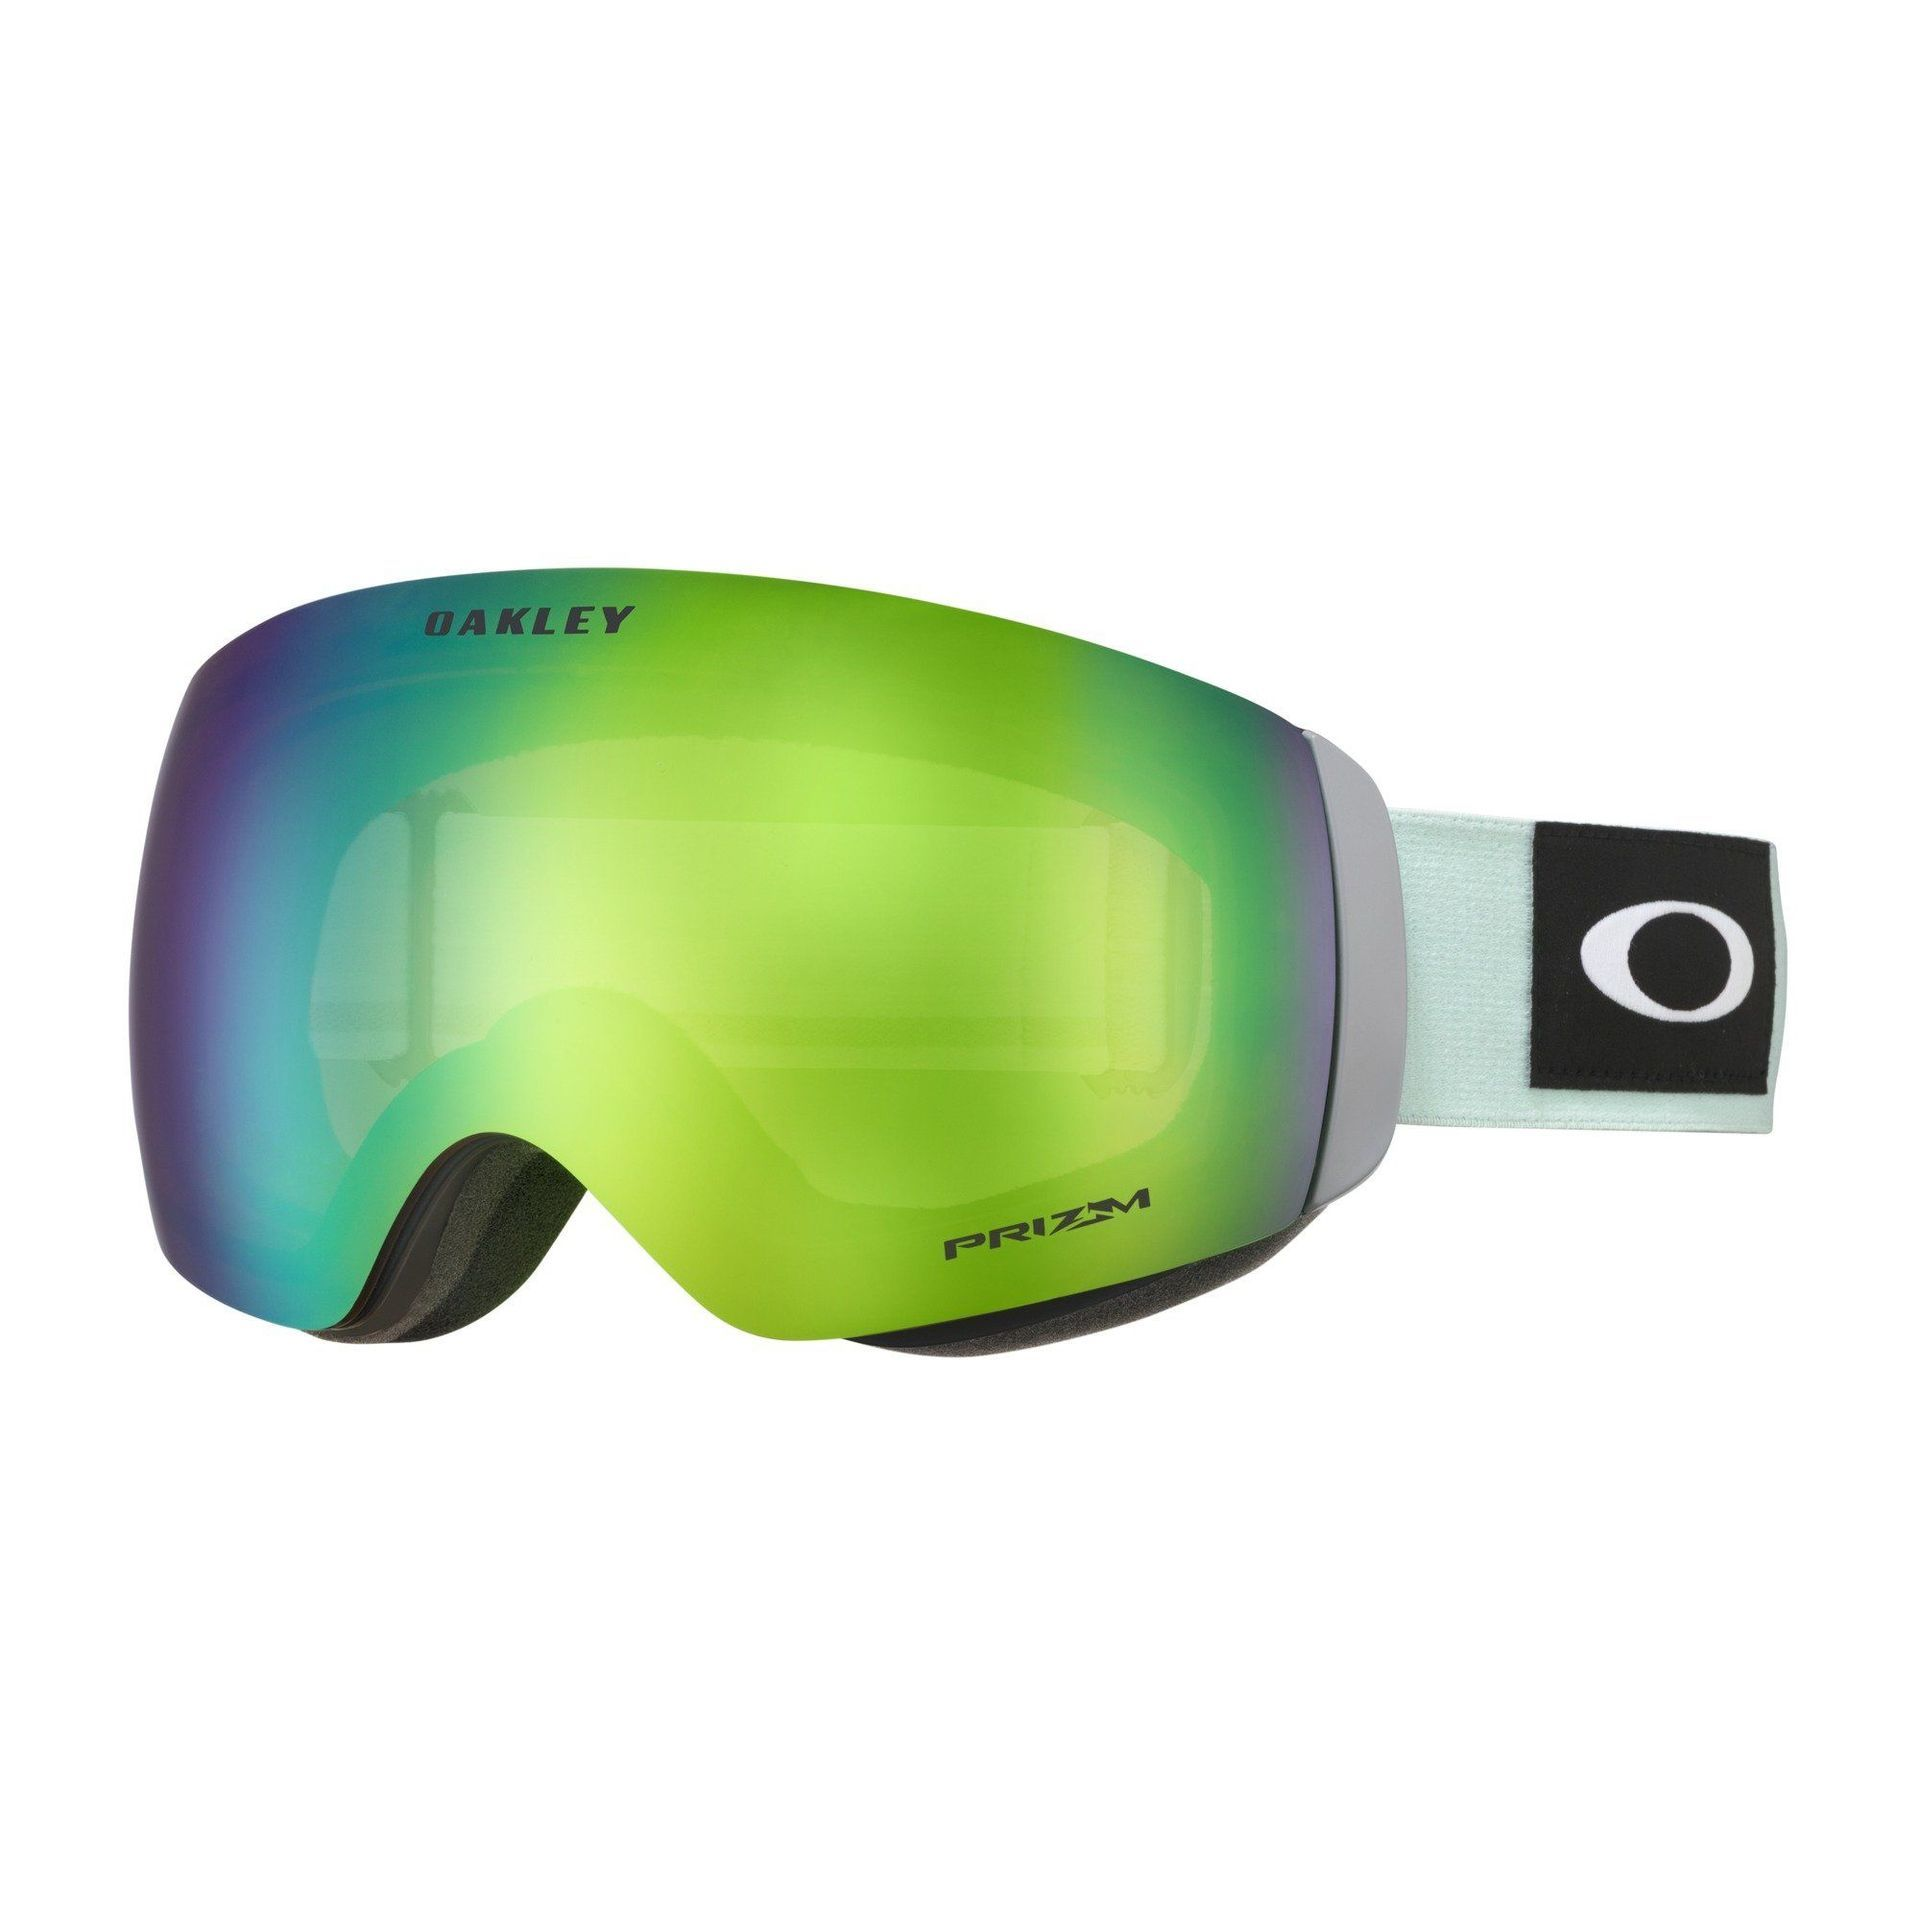 GOGLE OAKLEY FLIGHT DECK XM BLOCKEDOUT JASMINE|PRIZM SNOW JADE IRIDIUM 1